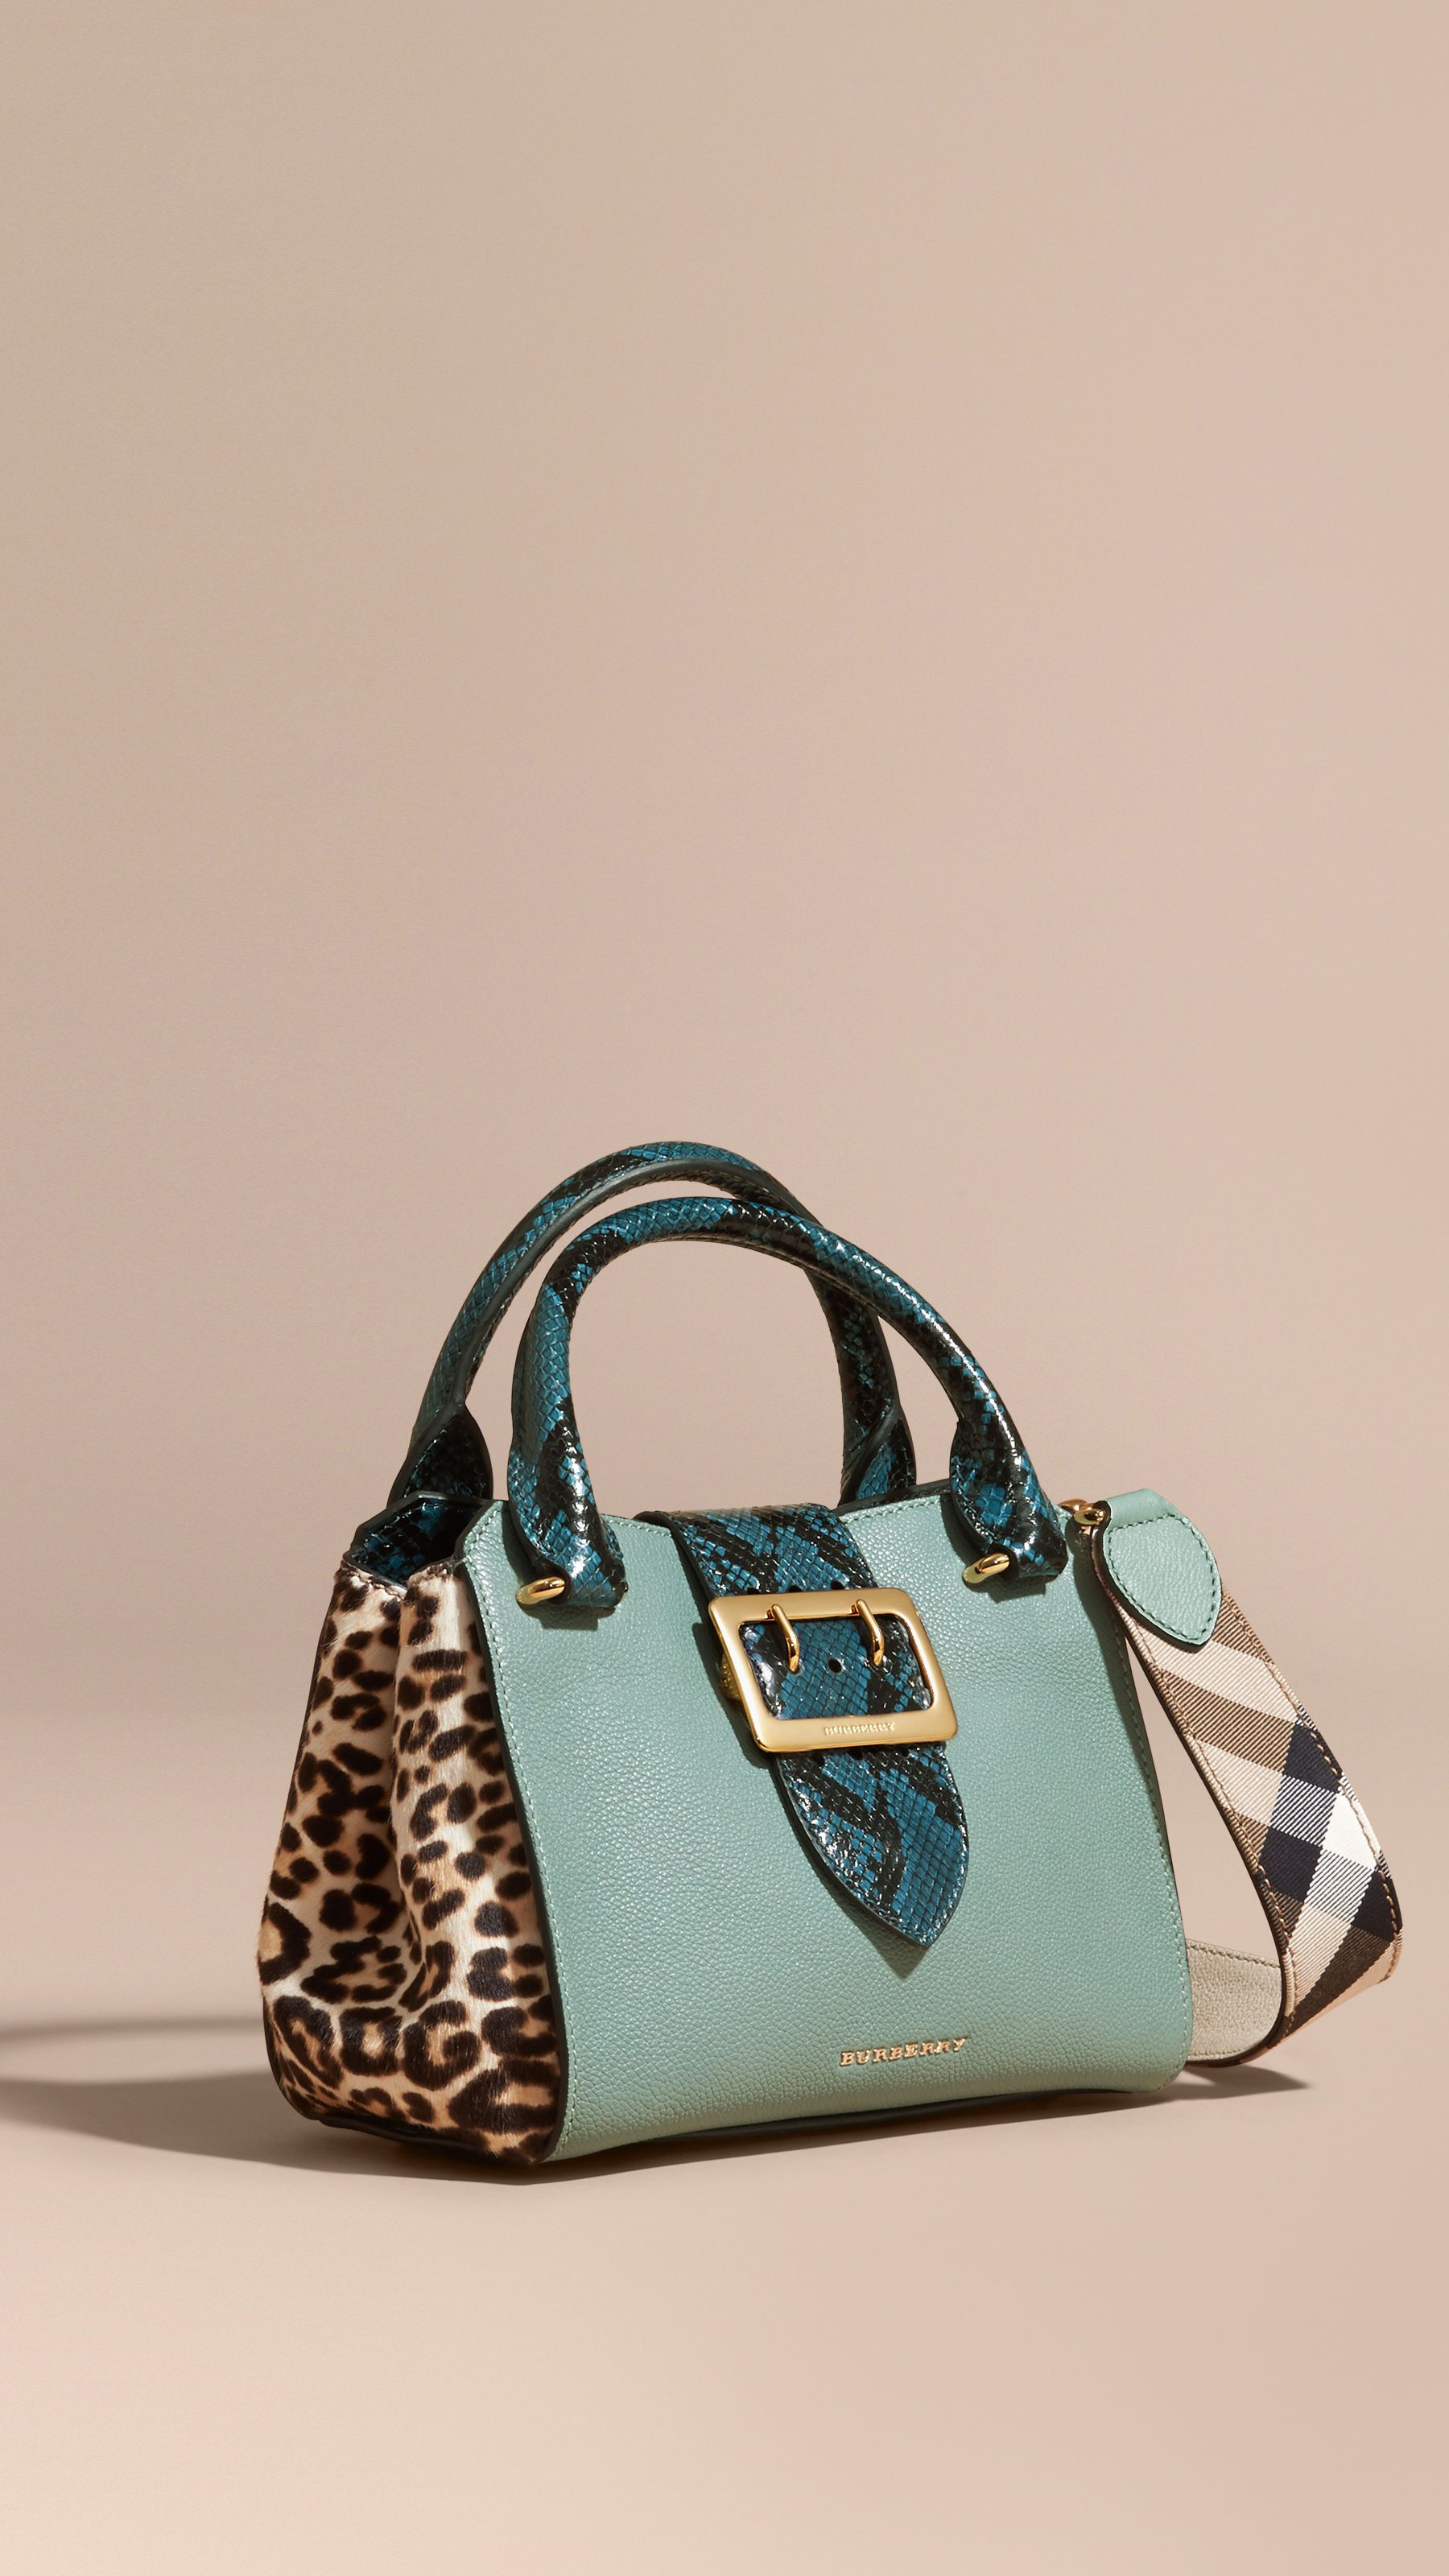 92a098138d38 The Small Buckle Tote in Leather and Leopard-print Calfskin Eucalyptus Green